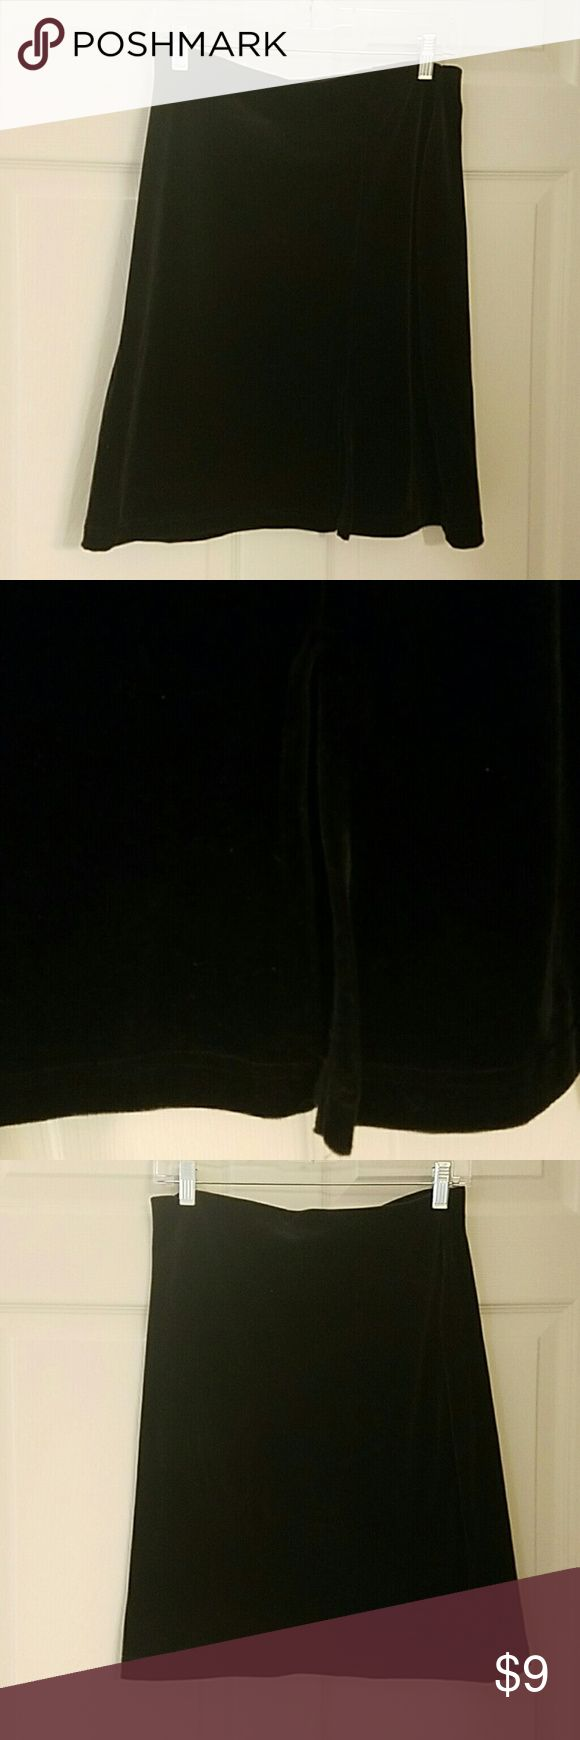 """Womens size L Black velour skirt Black velour skirt. Length is approximately 22"""". Small slit in the front. Slit is 7"""". Elastic waist. Really smooth and comfy. one step up Skirts"""